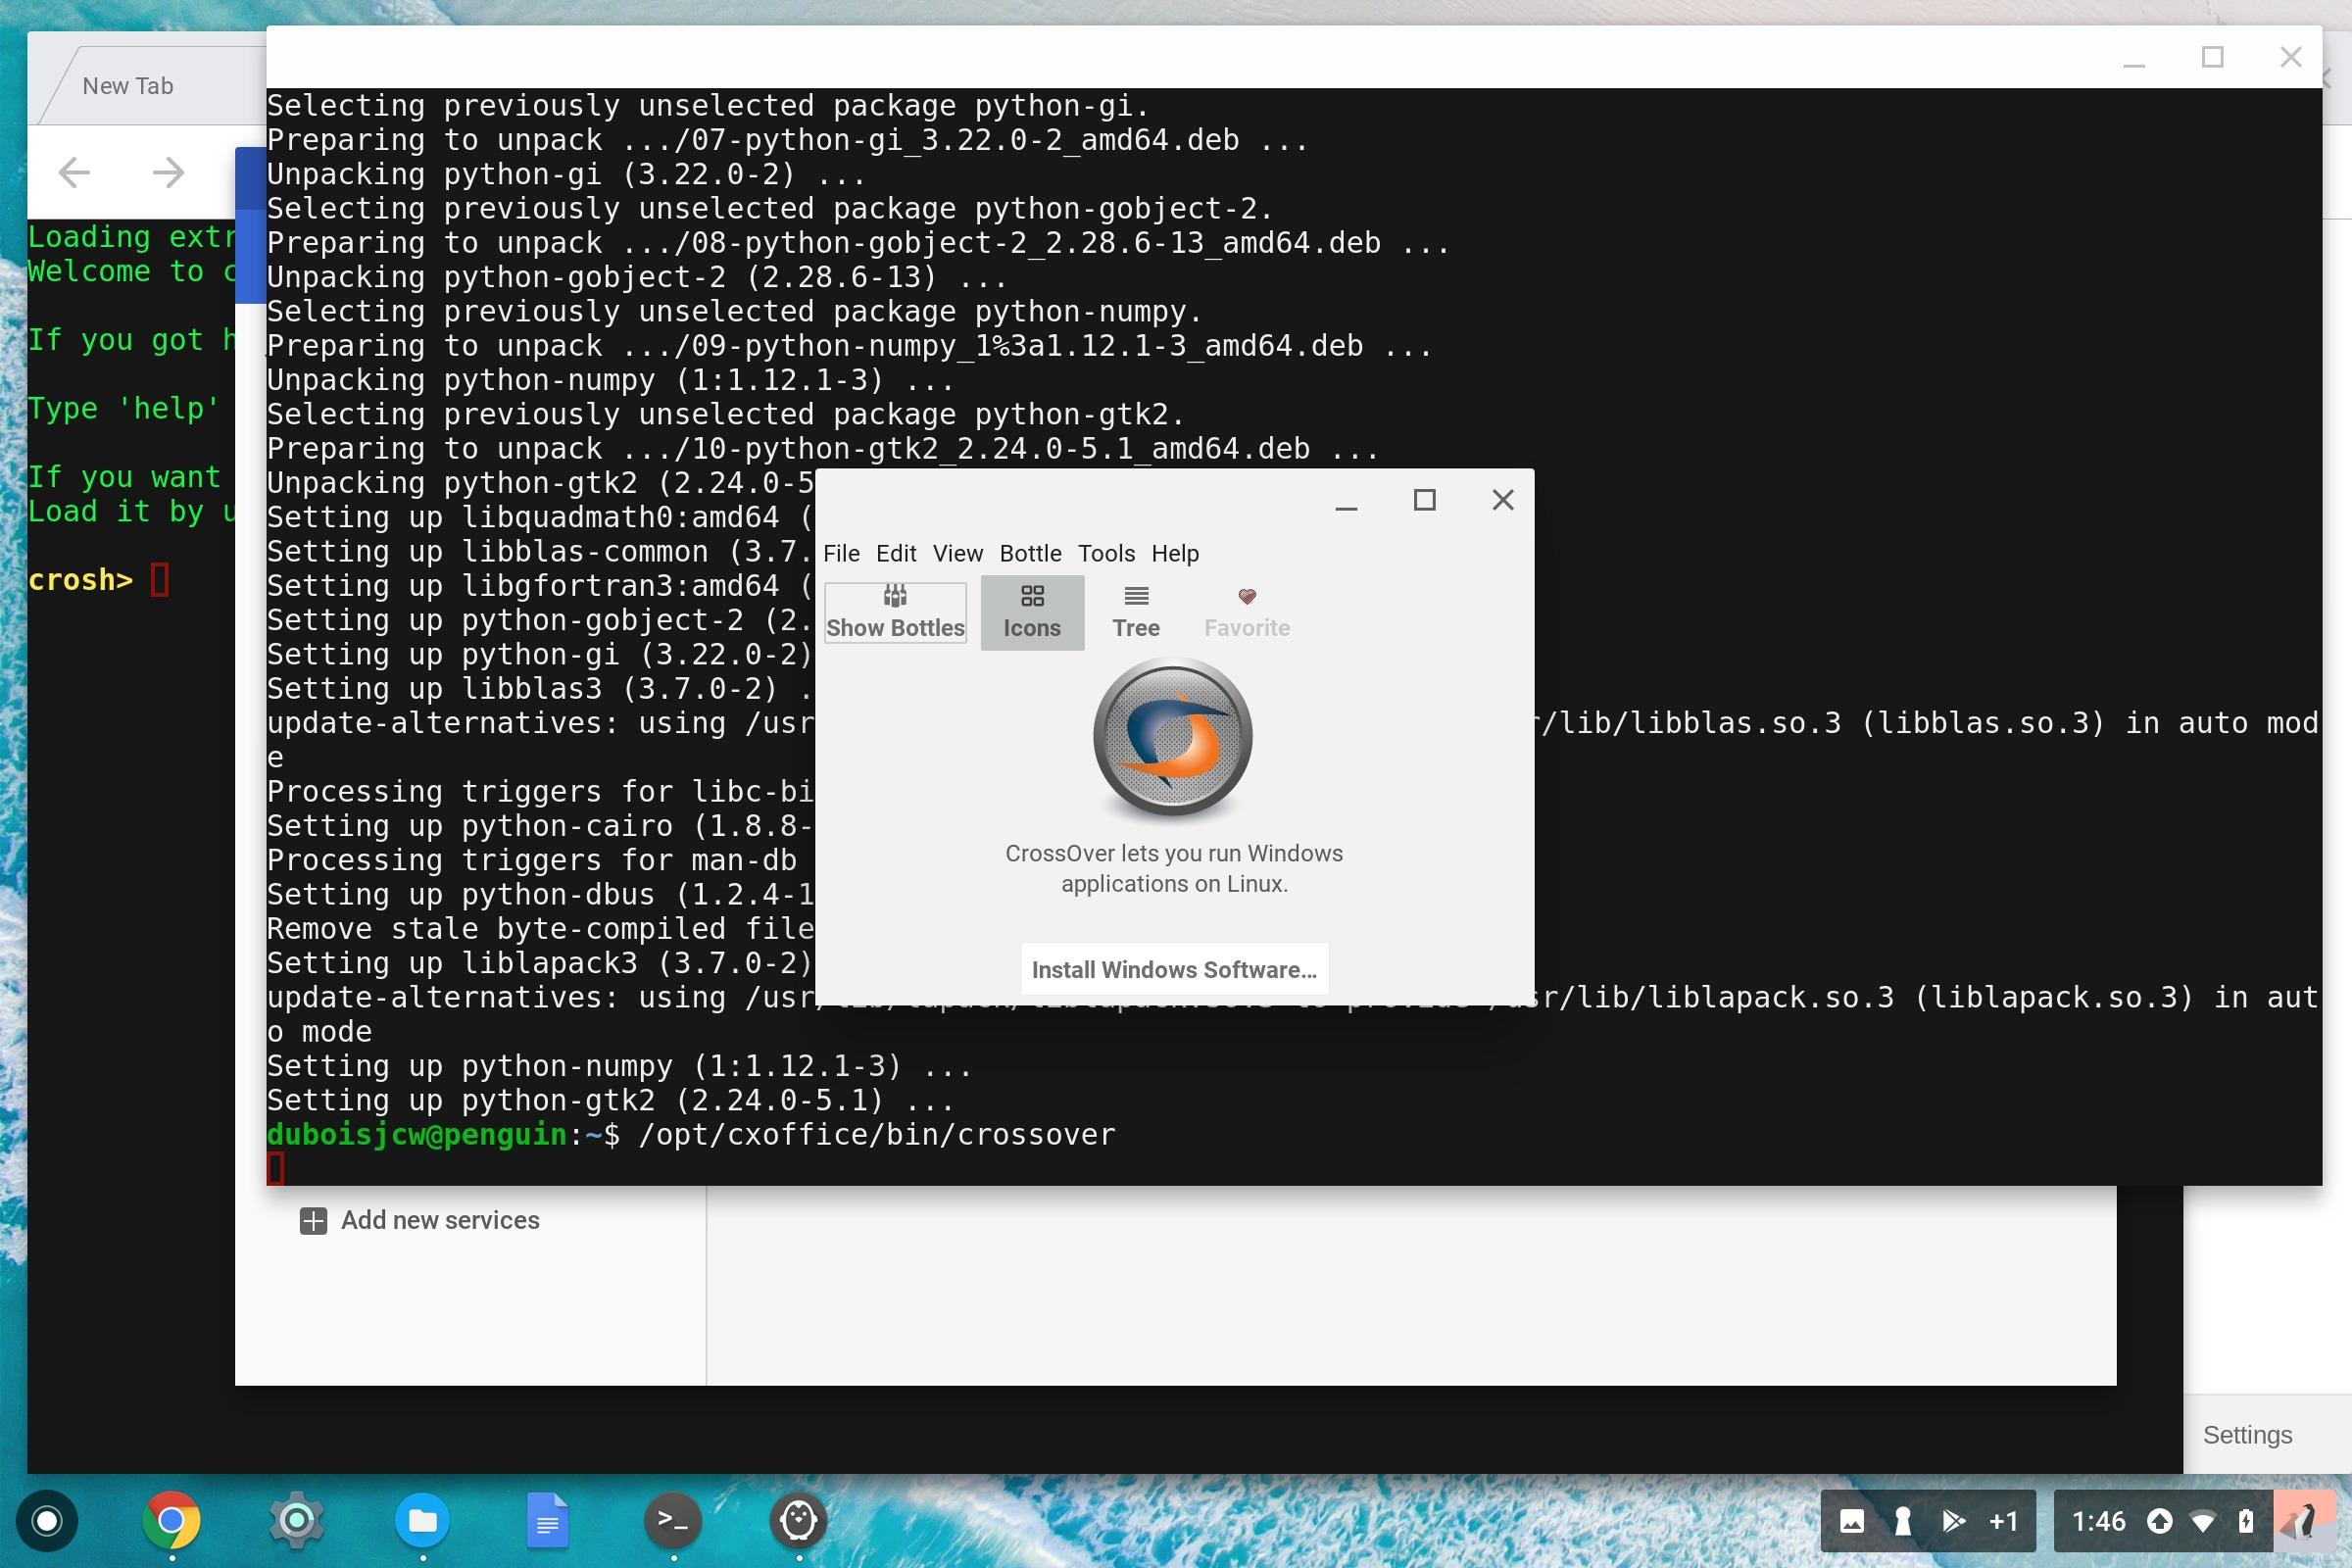 Chromebooks with Linux can run Windows apps but it's not